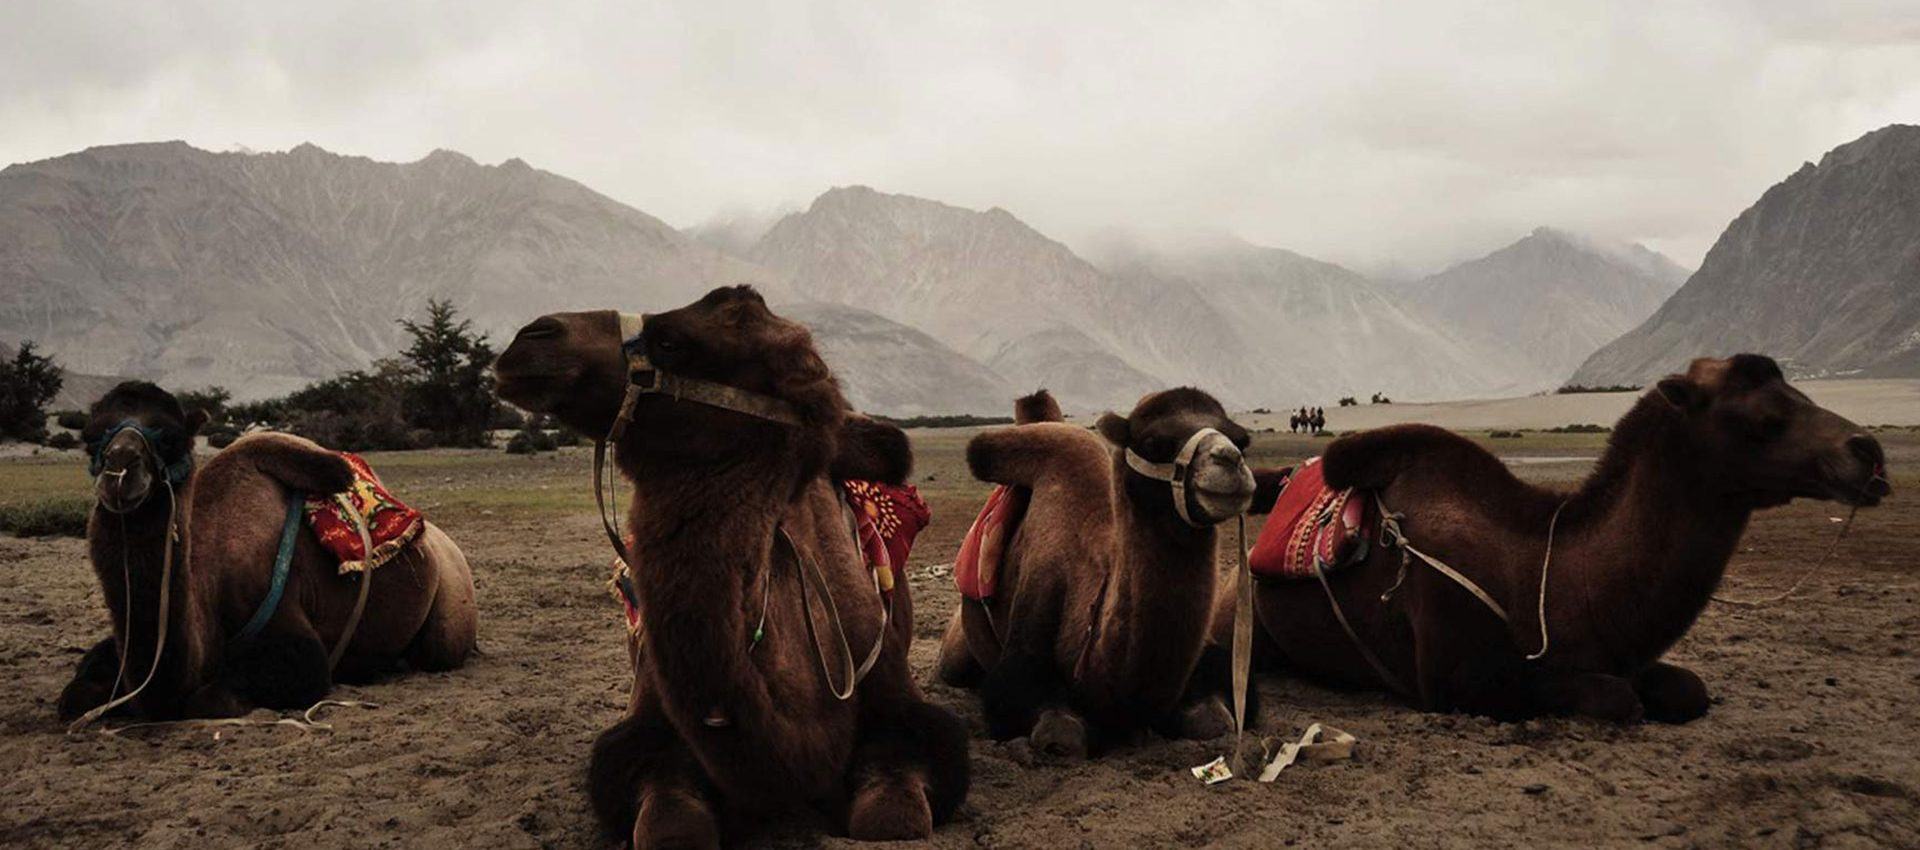 In Nubra Valley camels roam on the sand dunes created by the dust from the Himalayas.